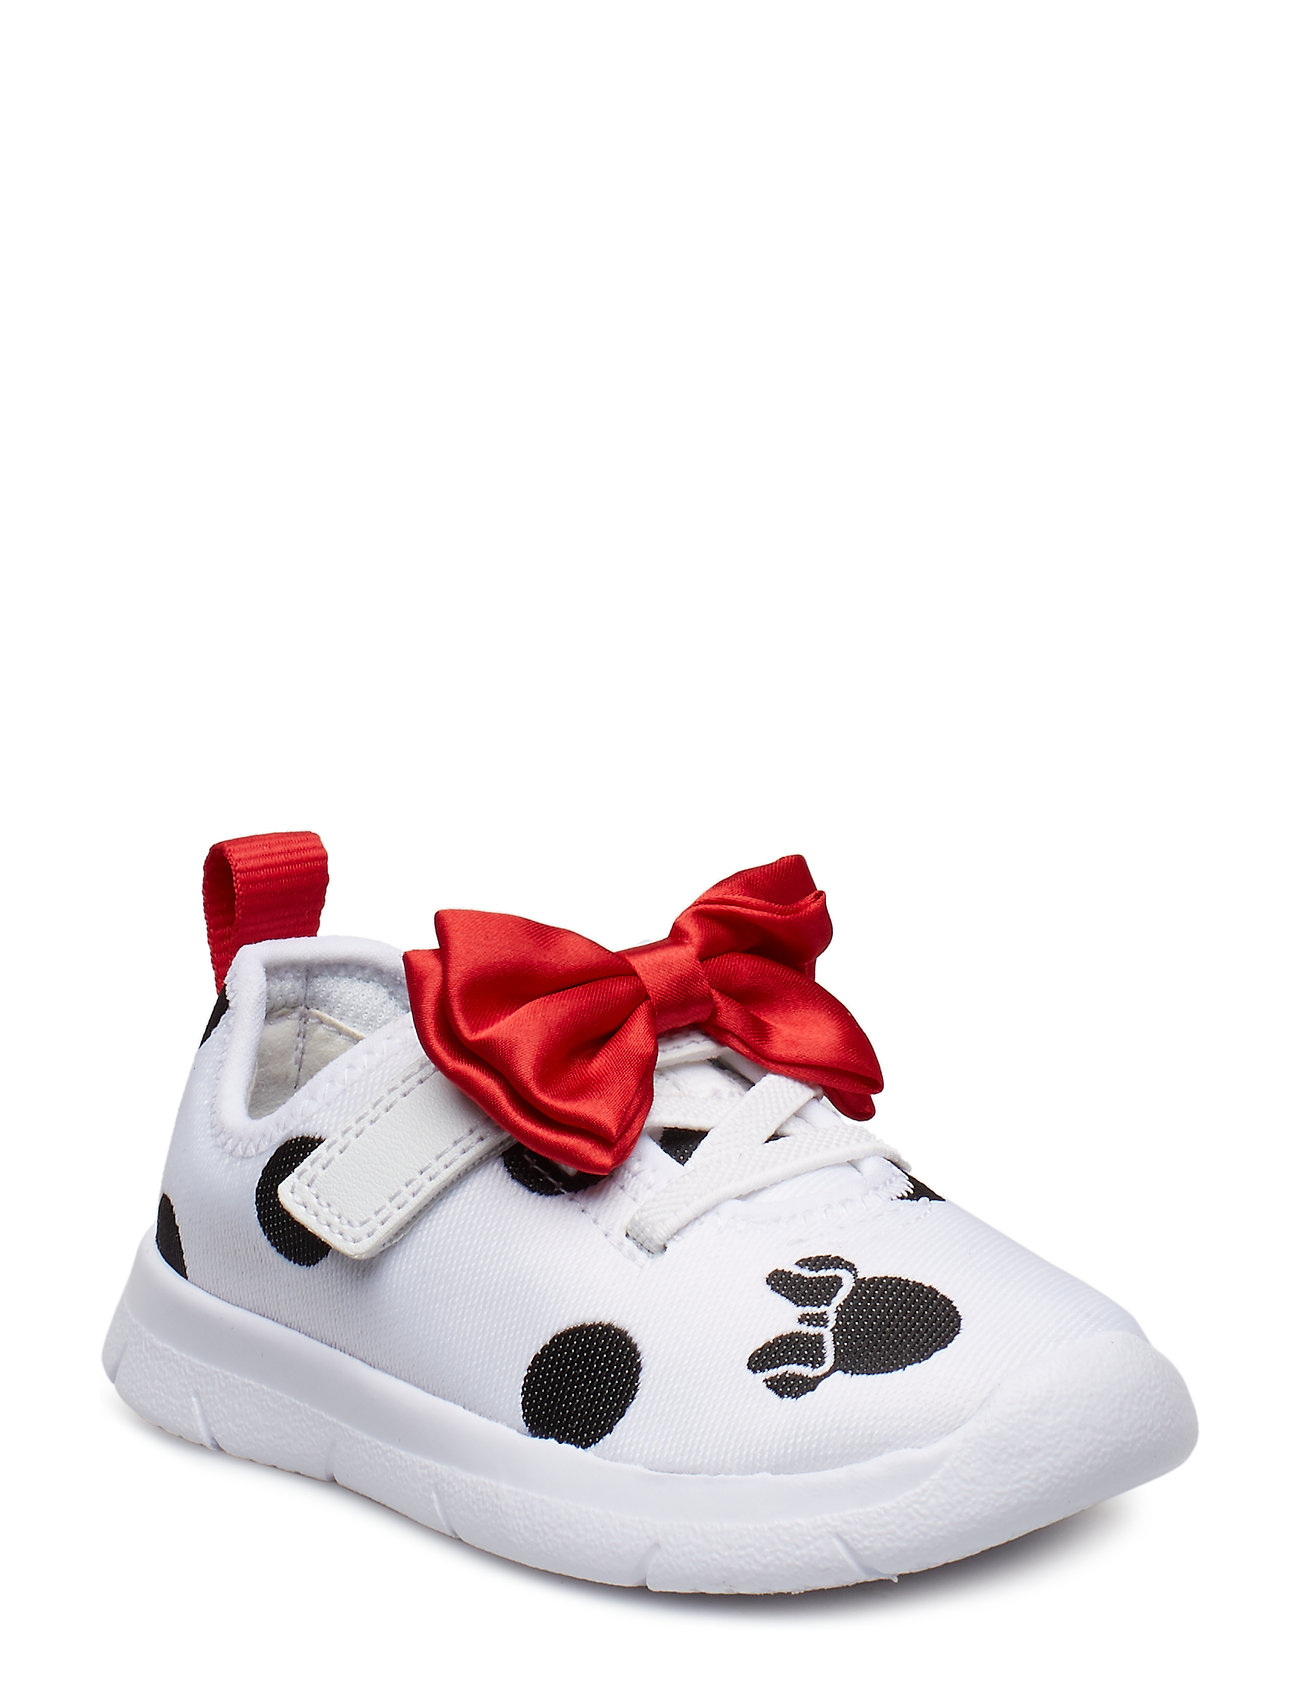 Clarks Ath Bow T - WHITE COMBI